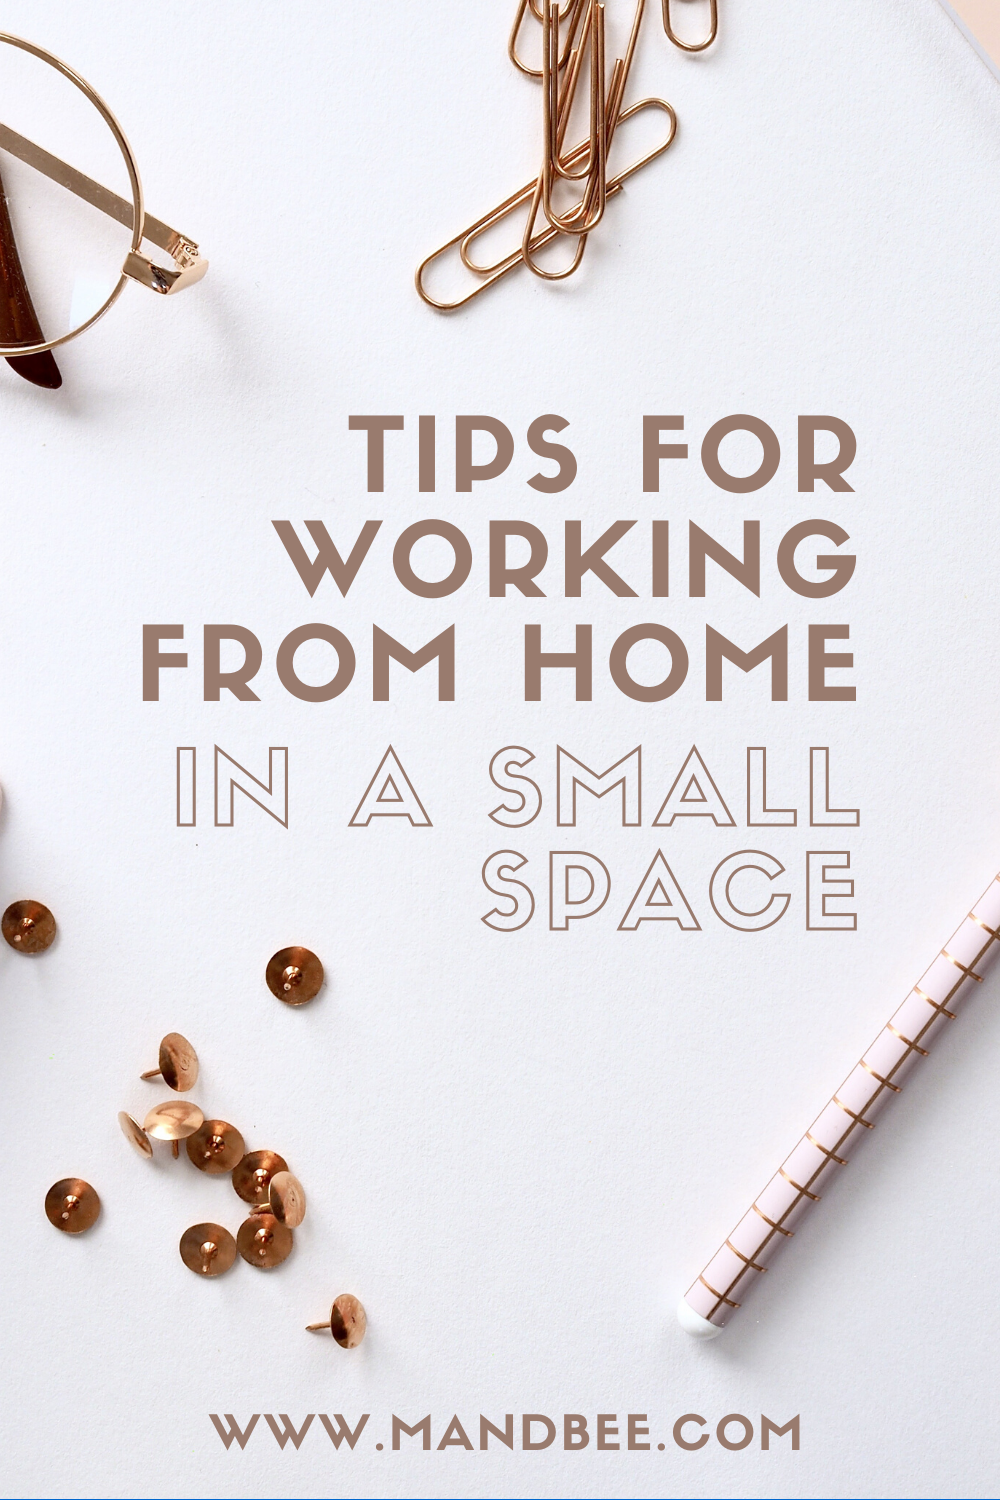 Tips for Working from Home In a Small Space